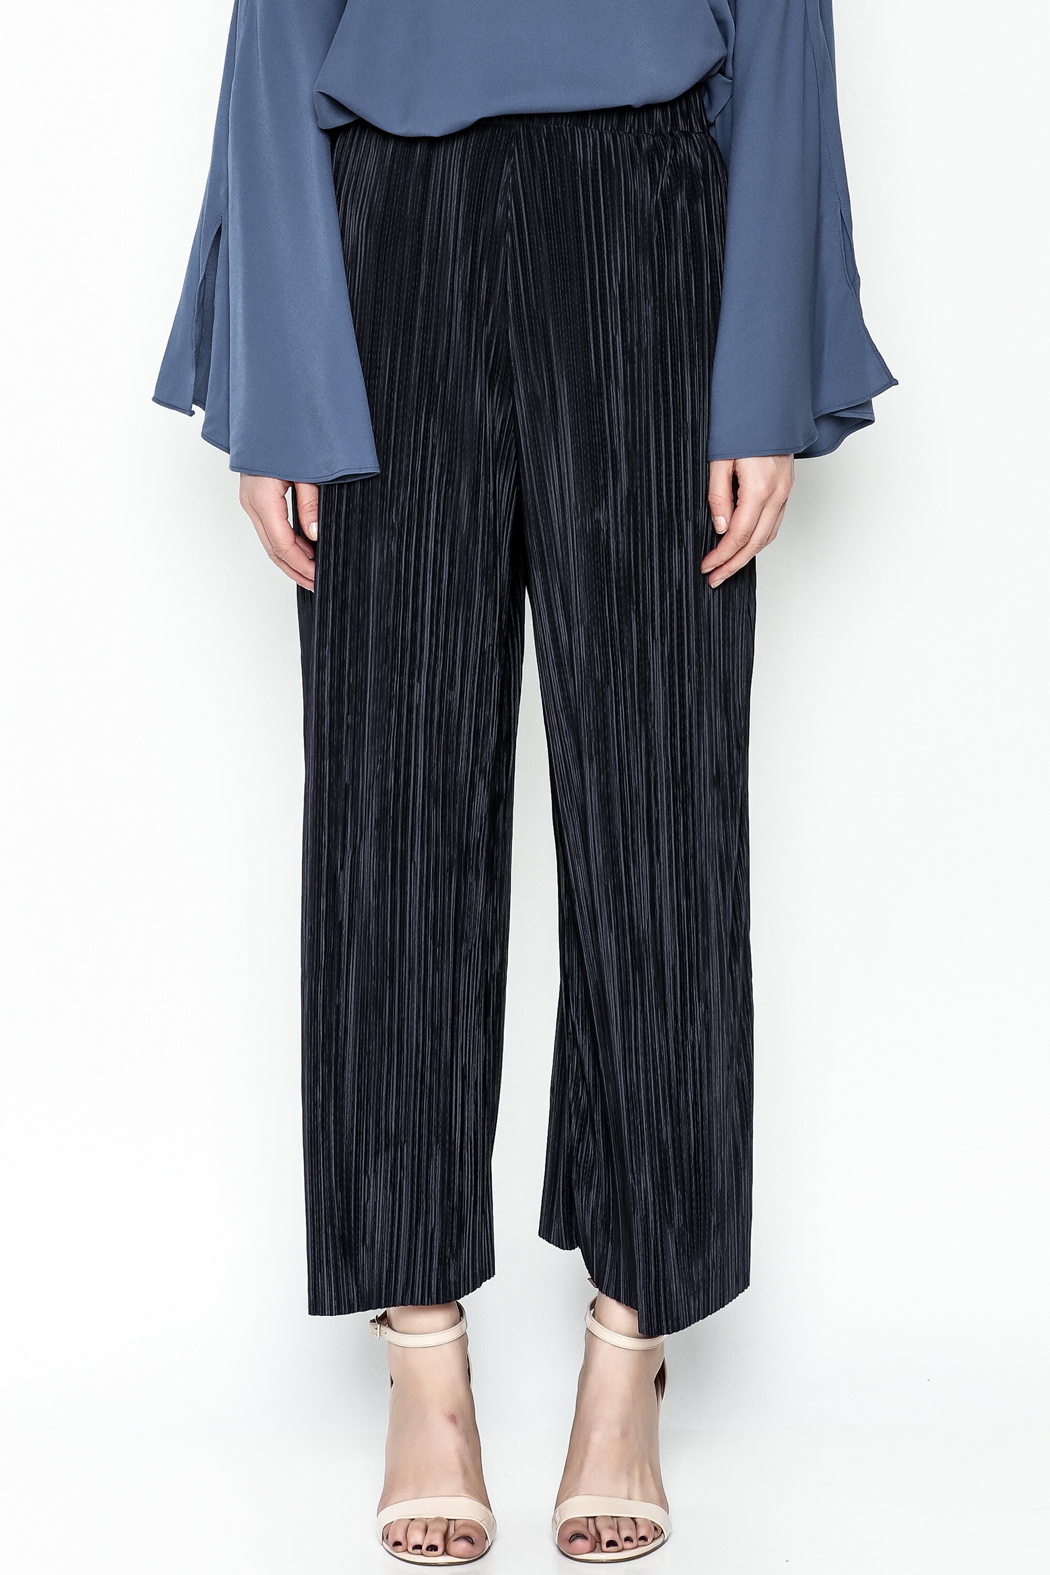 Pinkyotto Textured Wide Leg Pants - Front Full Image